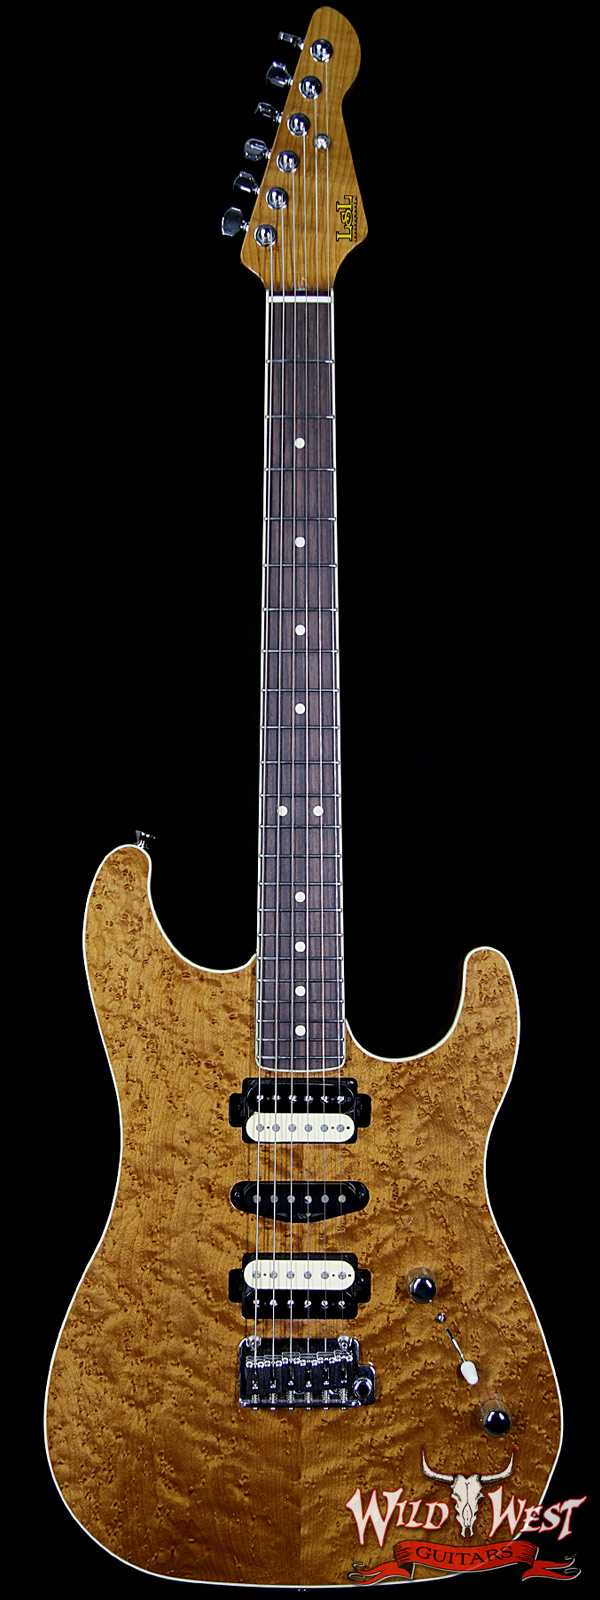 "LsL XT3 Deluxe HSH ""Birdee"" Roasted Birdseye Top and Roasted Maple Neck Natural Aged"